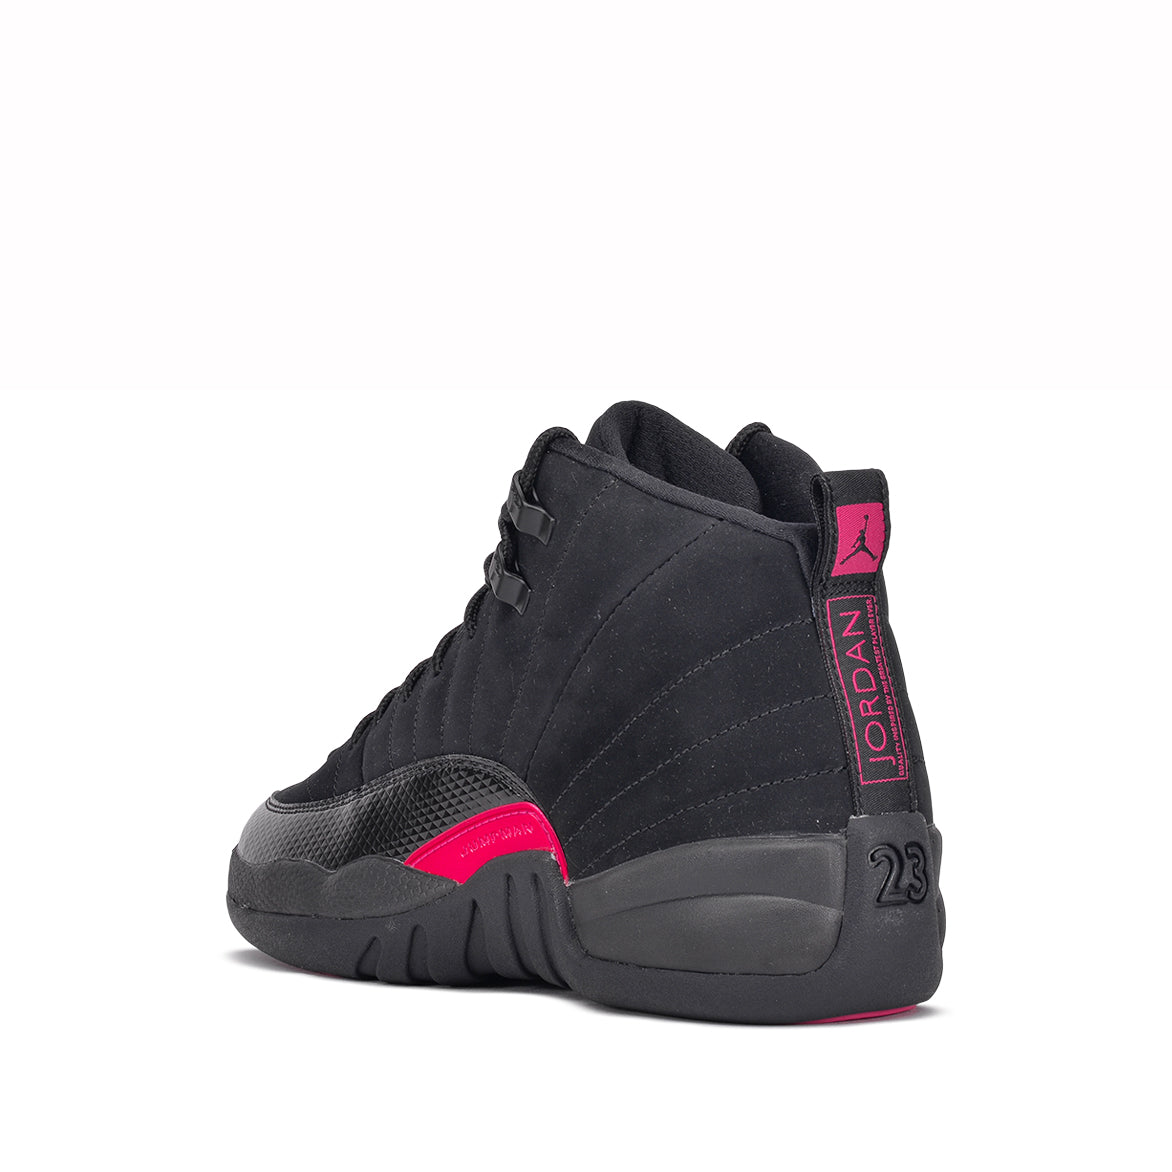 "AIR JORDAN 12 RETRO (GG) ""RUSH PINK"""